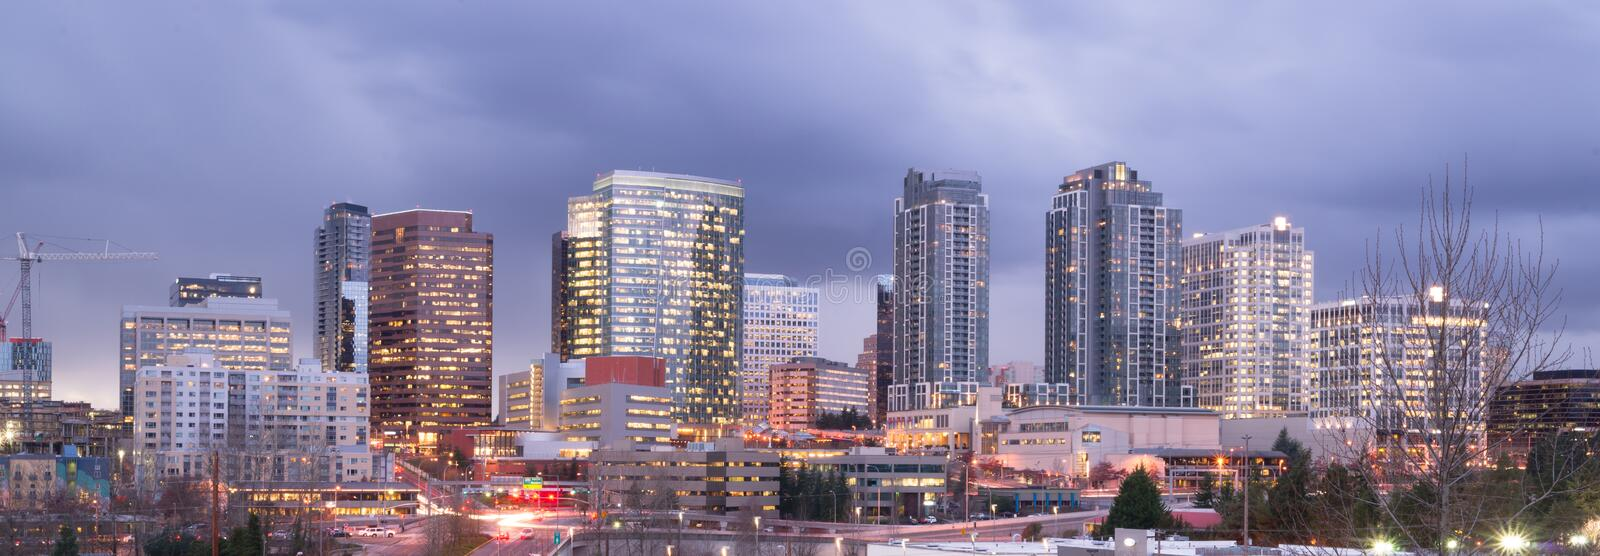 Bright Lights City Skyline Downtown Bellevue Washington USA. A clear panoramic view of Bellevue, WA with a storm passing at dusk stock photo